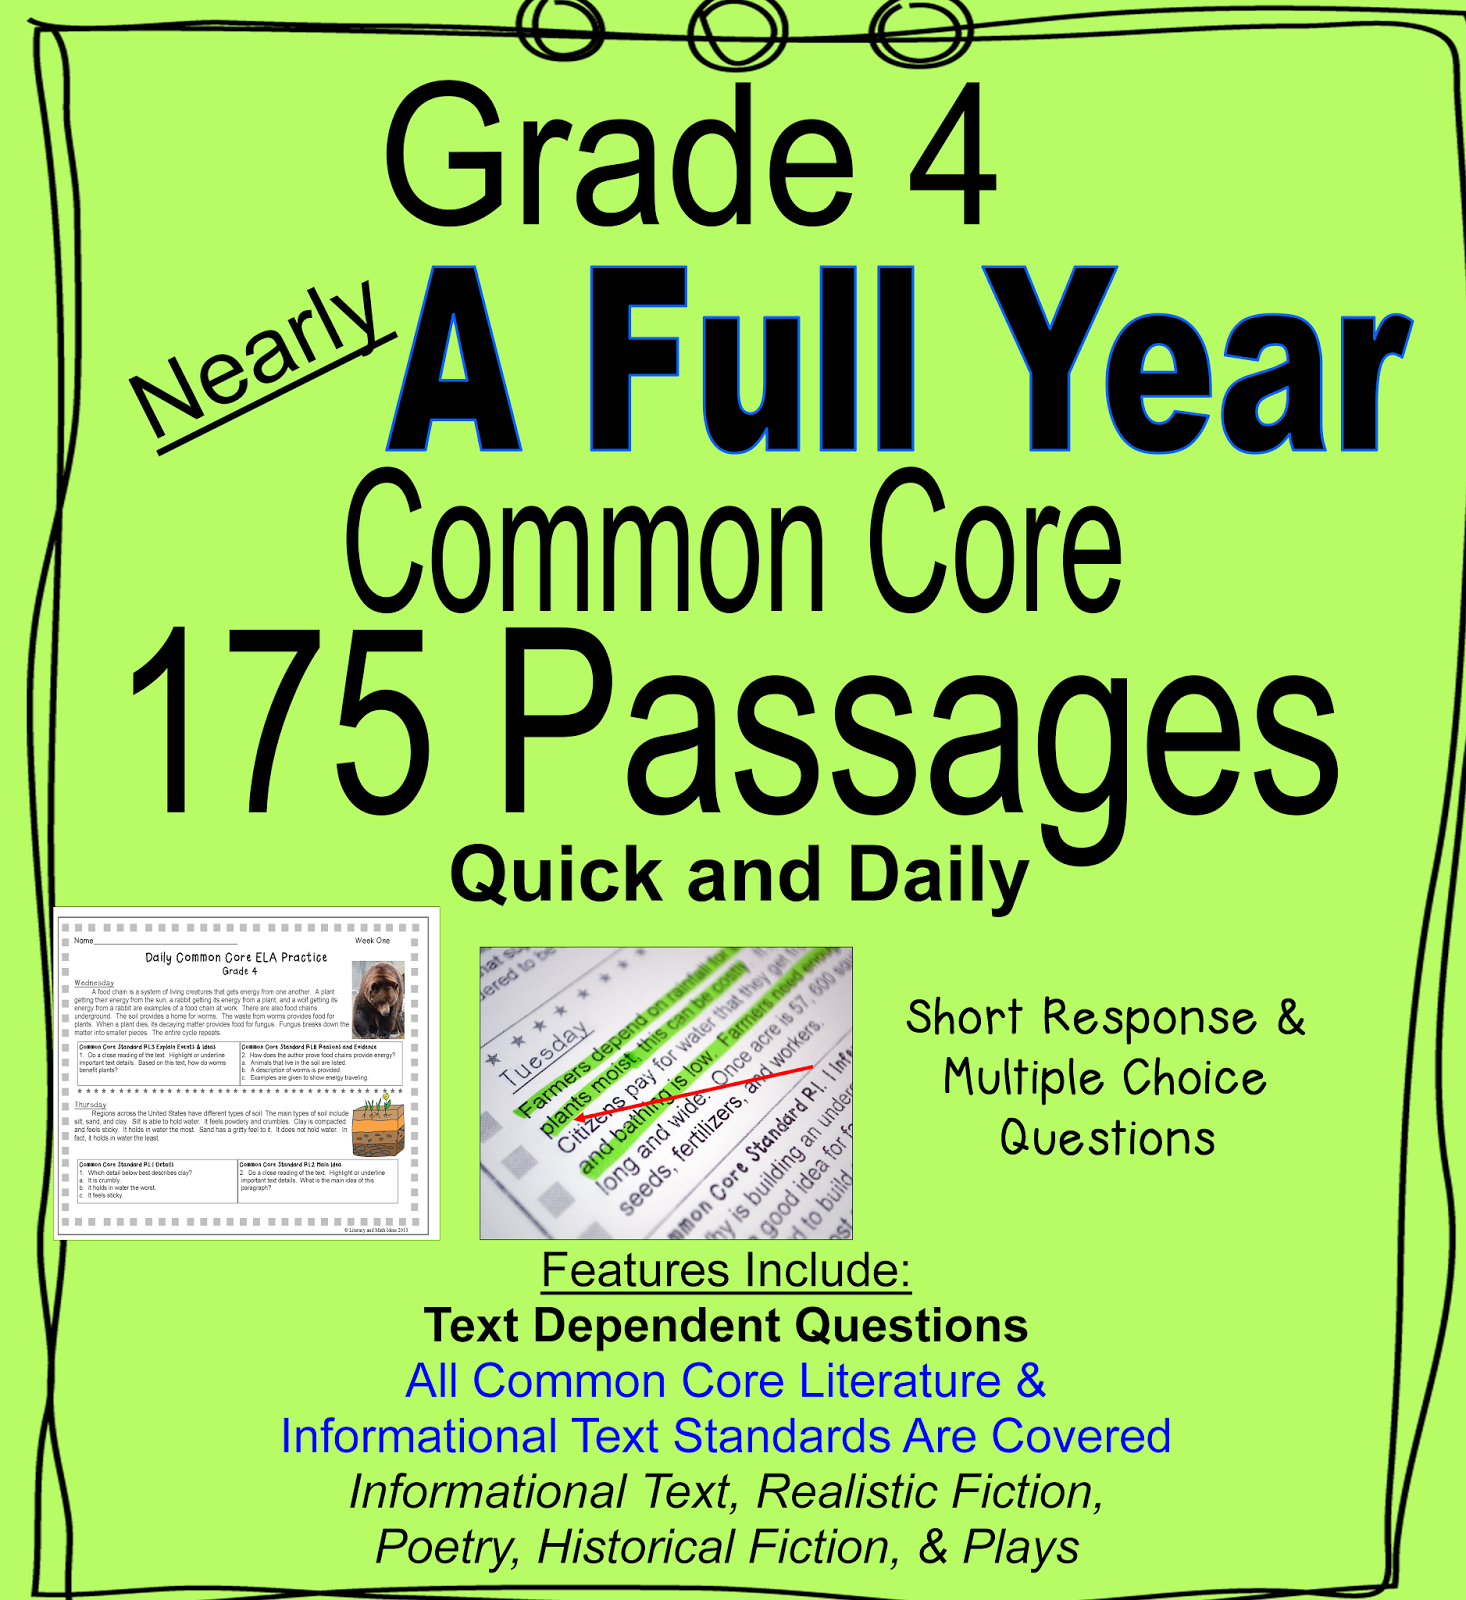 Nearly A Full Year Of Daily Common Core Of Grade 4 Reading